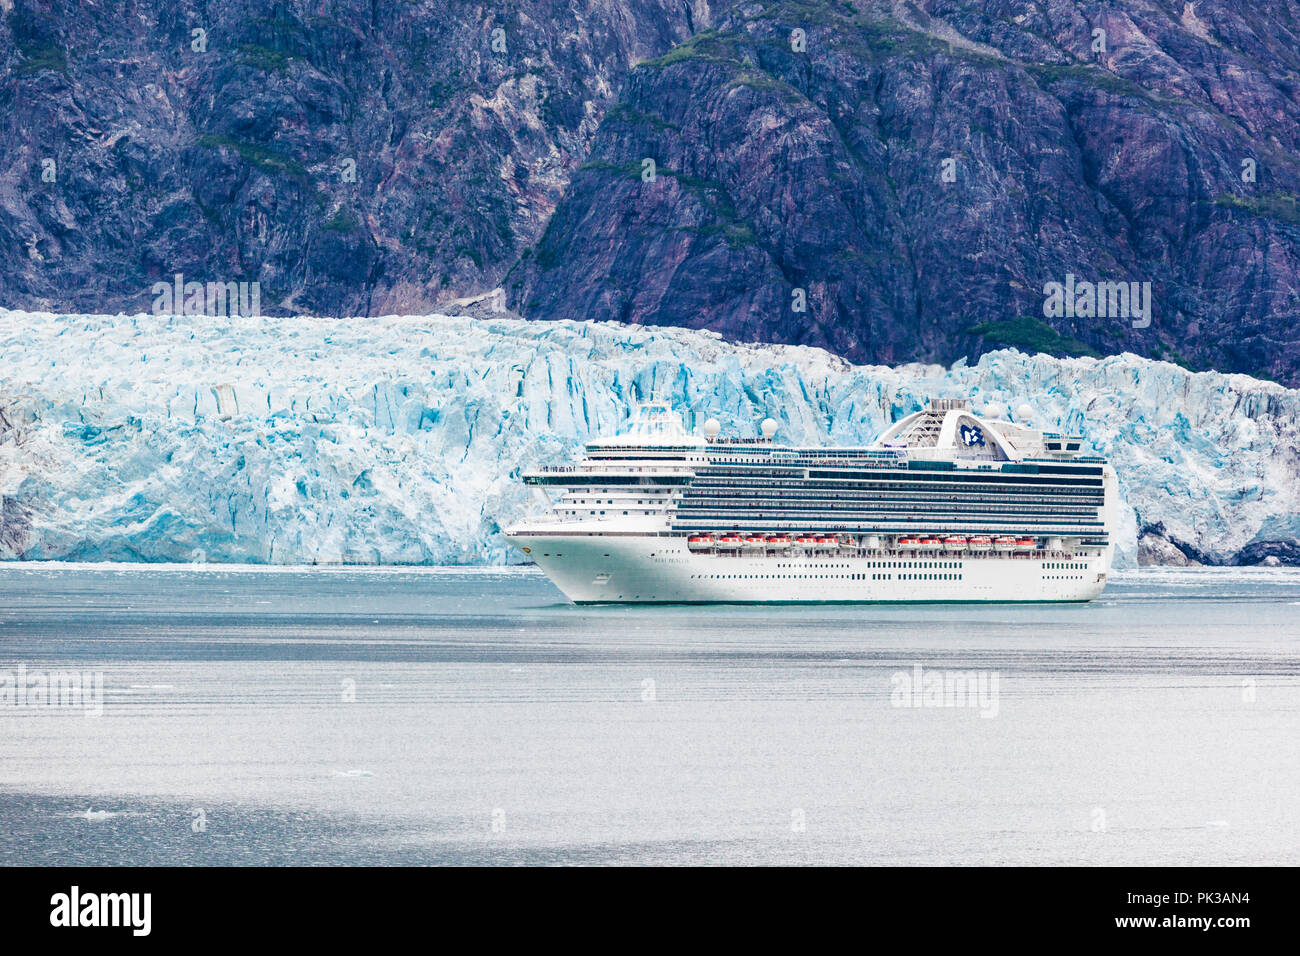 Passengers on the Princess Cruises 'Ruby Princess' enjoying a close view of the Margerie Glacier in the Tarr Inlet of Glacier Bay, Alaska, USA - Viewe - Stock Image